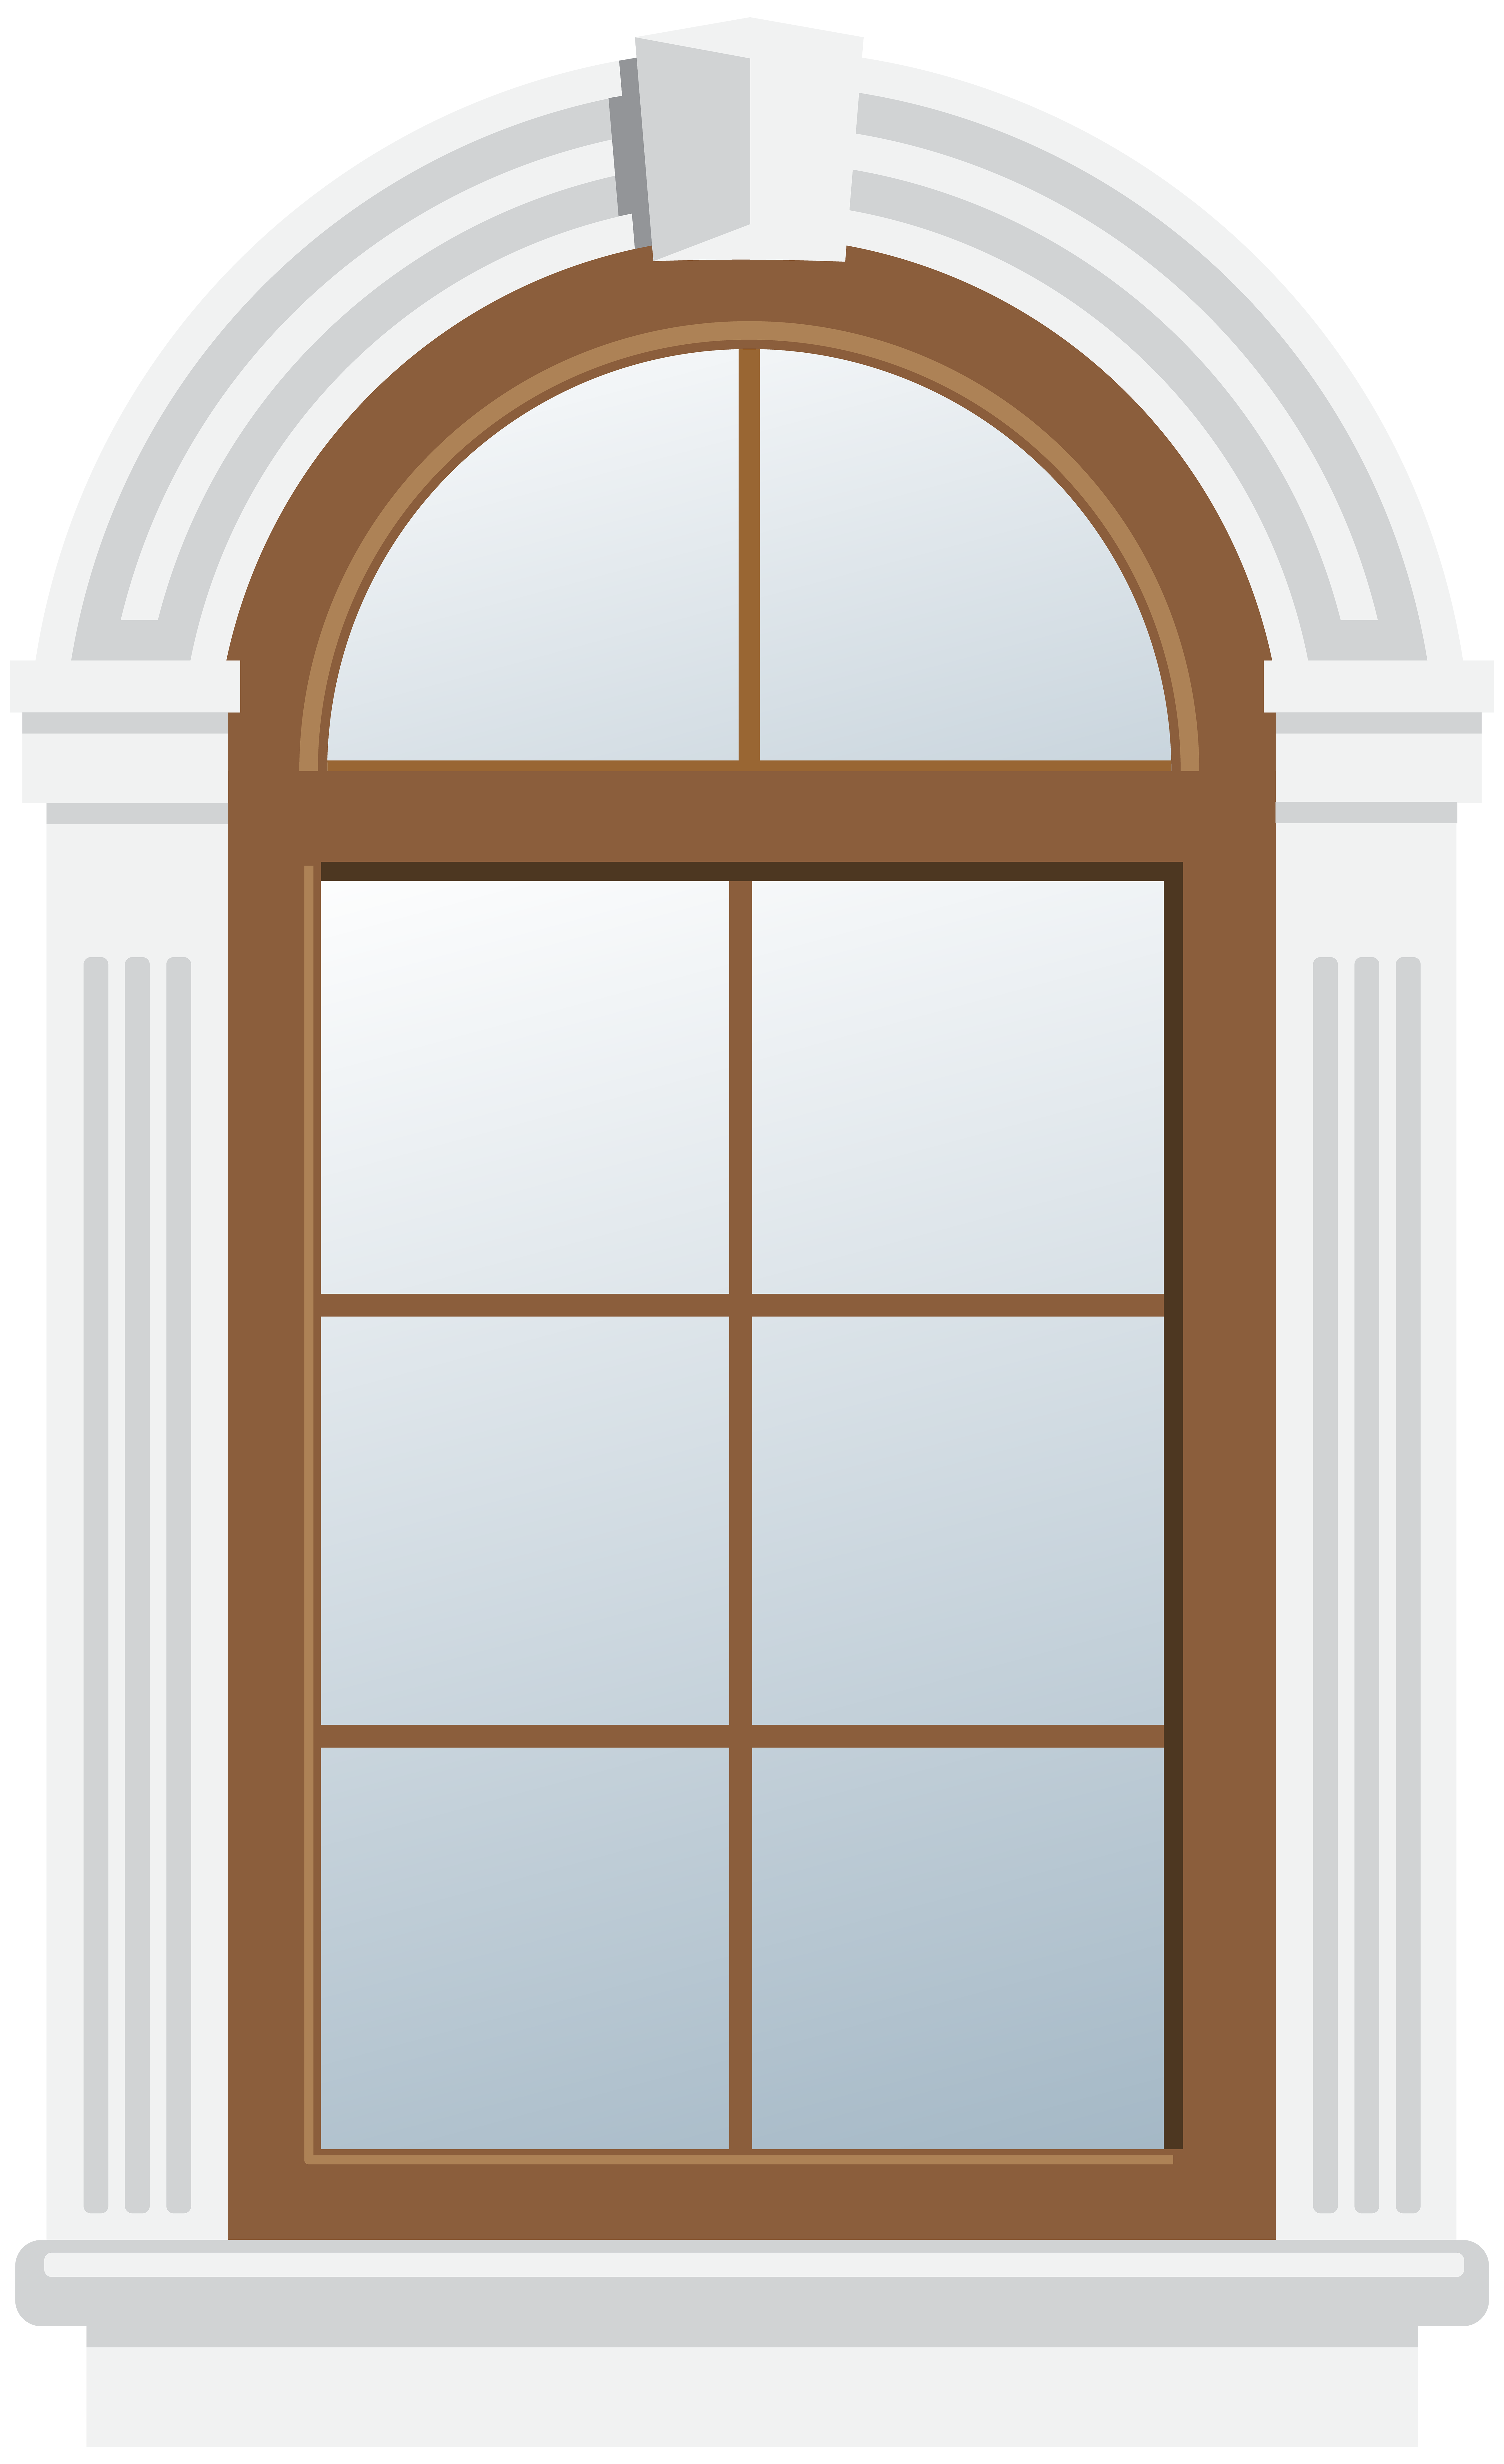 Arch window clipart clip art library download Arch Window PNG Clip Art - Best WEB Clipart clip art library download